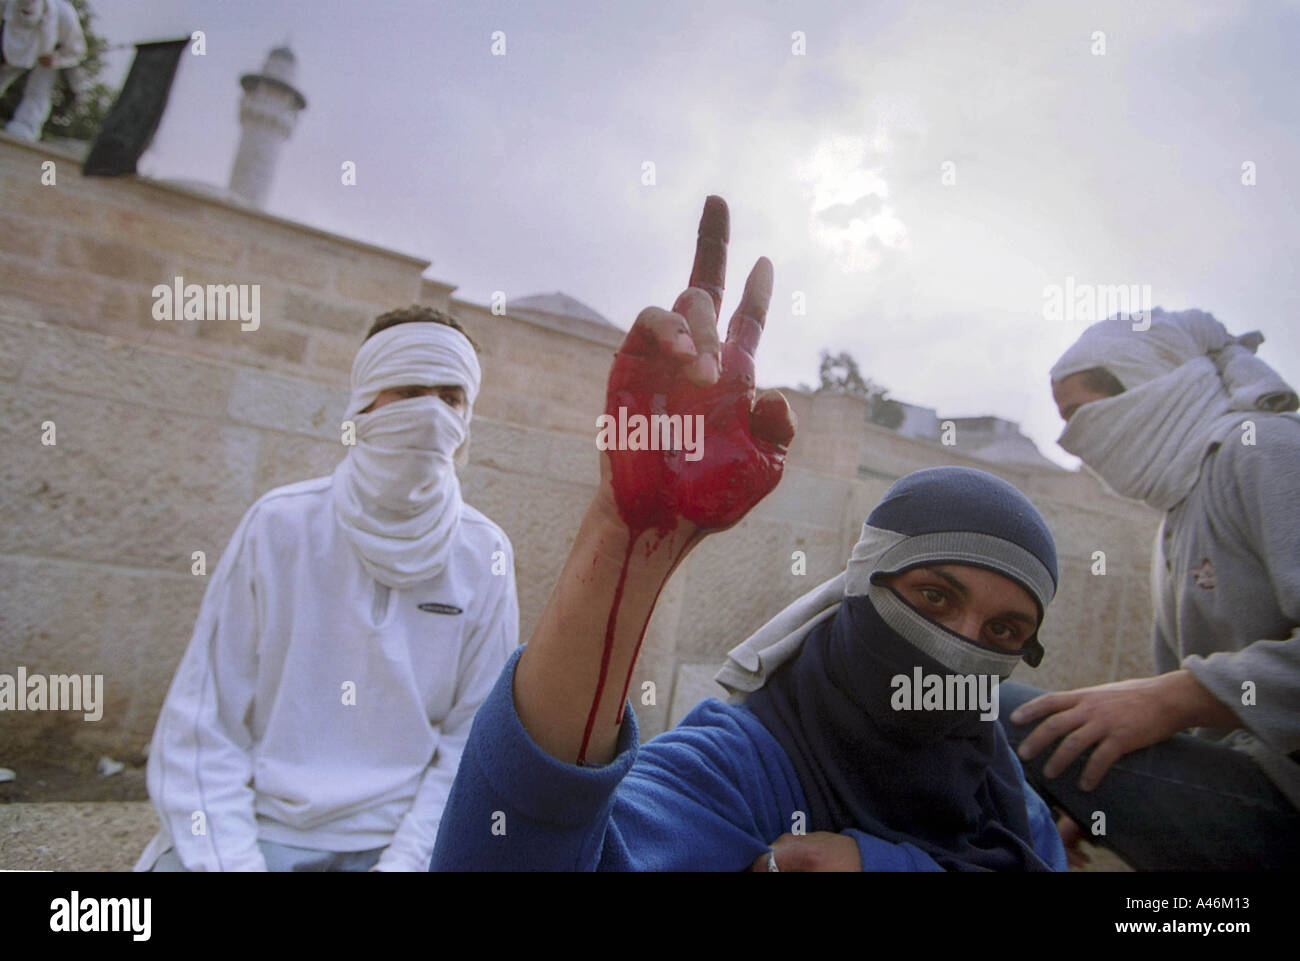 al aqsa mosque clash a palestinian demonstrator dips his hand in the blood of amar mehnies a 16 year old boy killed - Stock Image